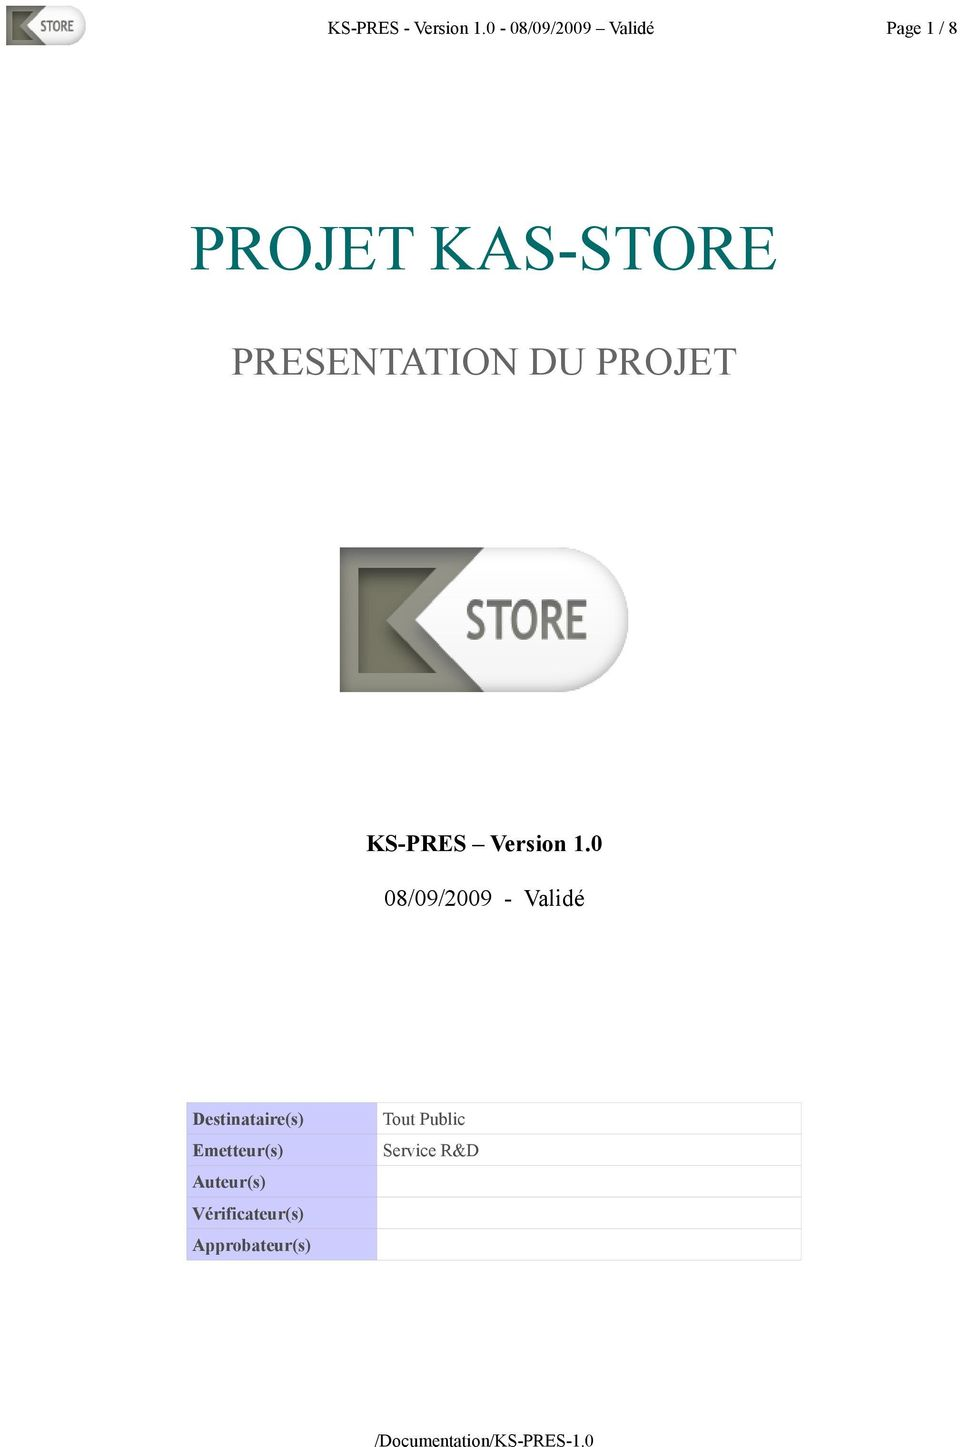 PRESENTATION DU PROJET KS-PRES Version 1.